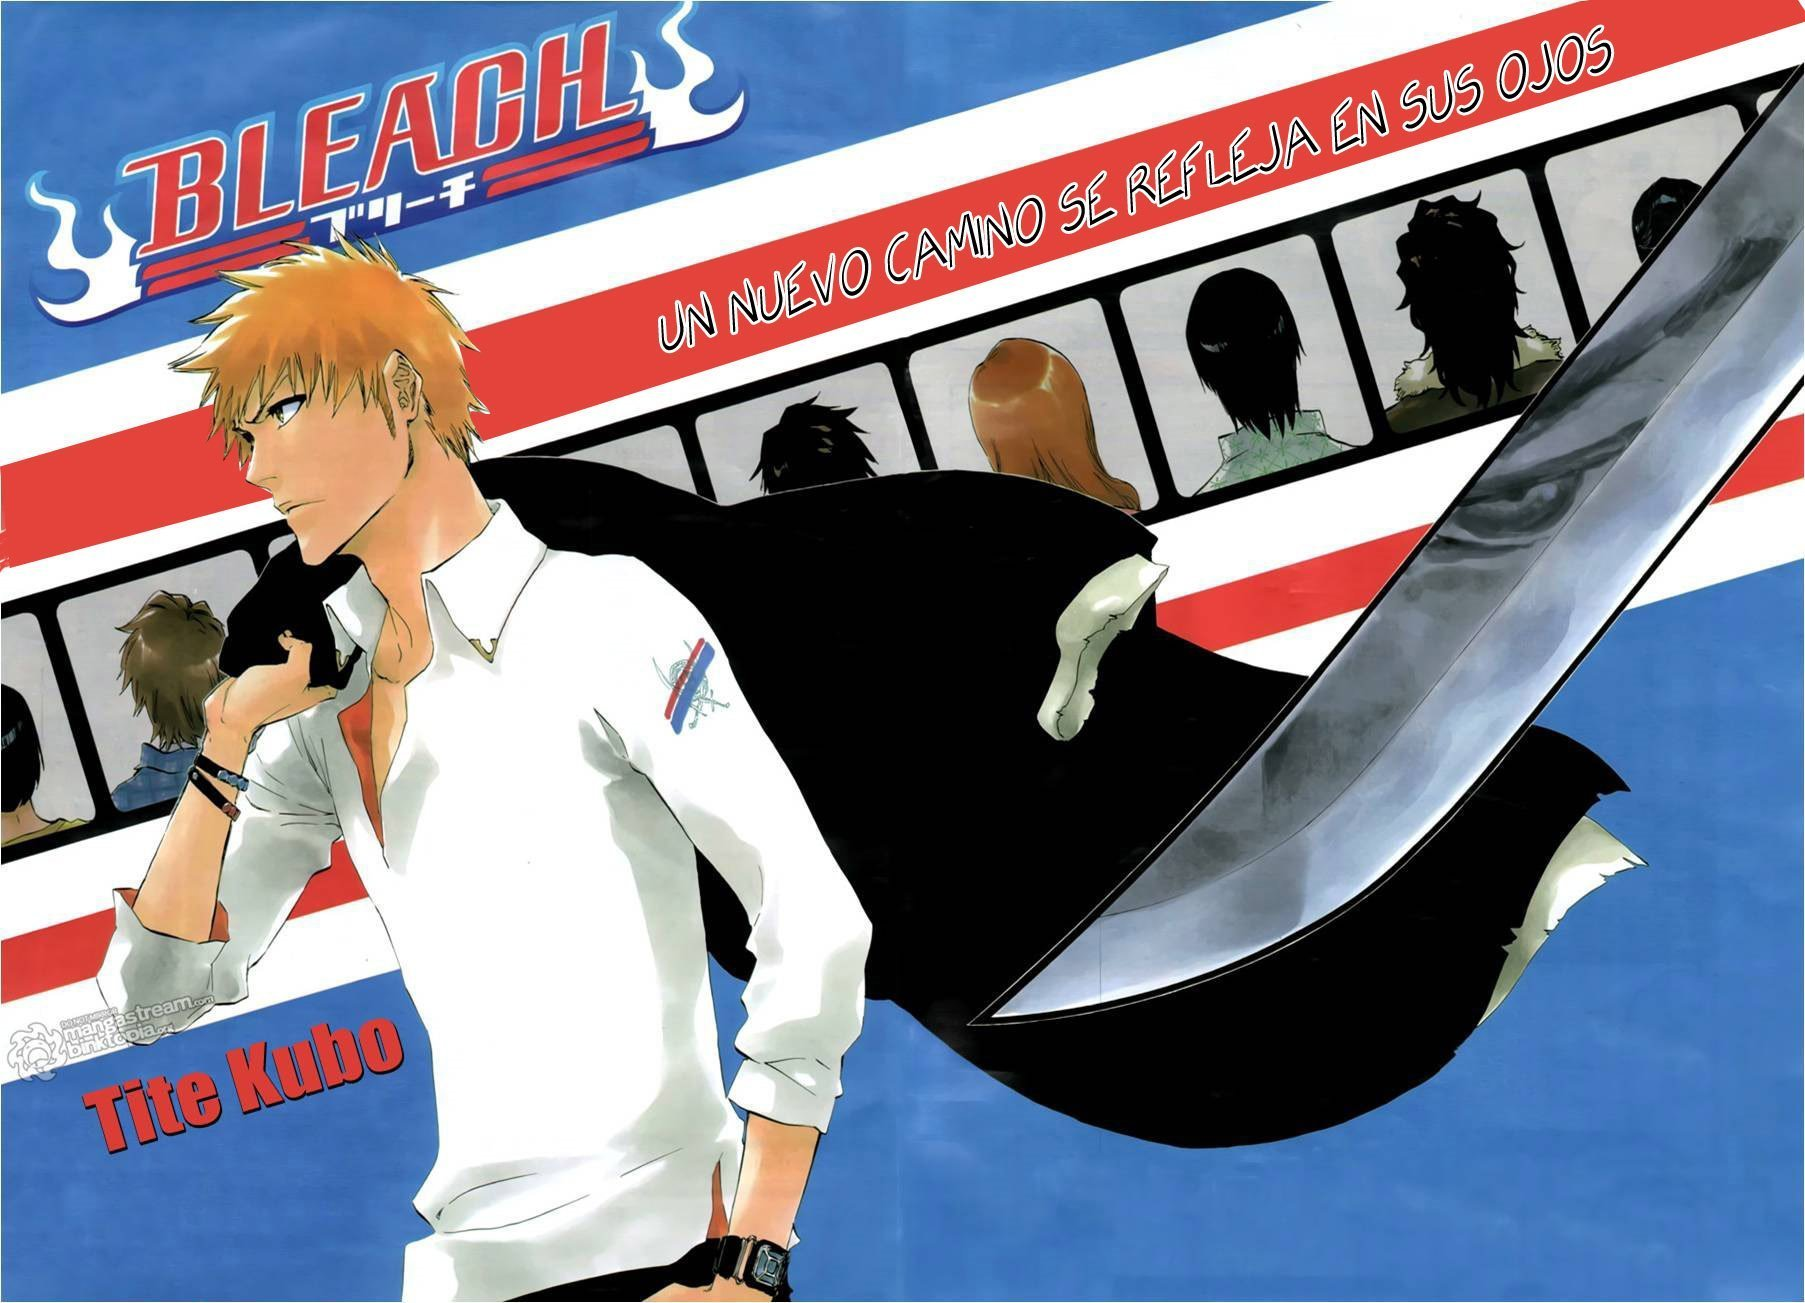 ichigo is cool